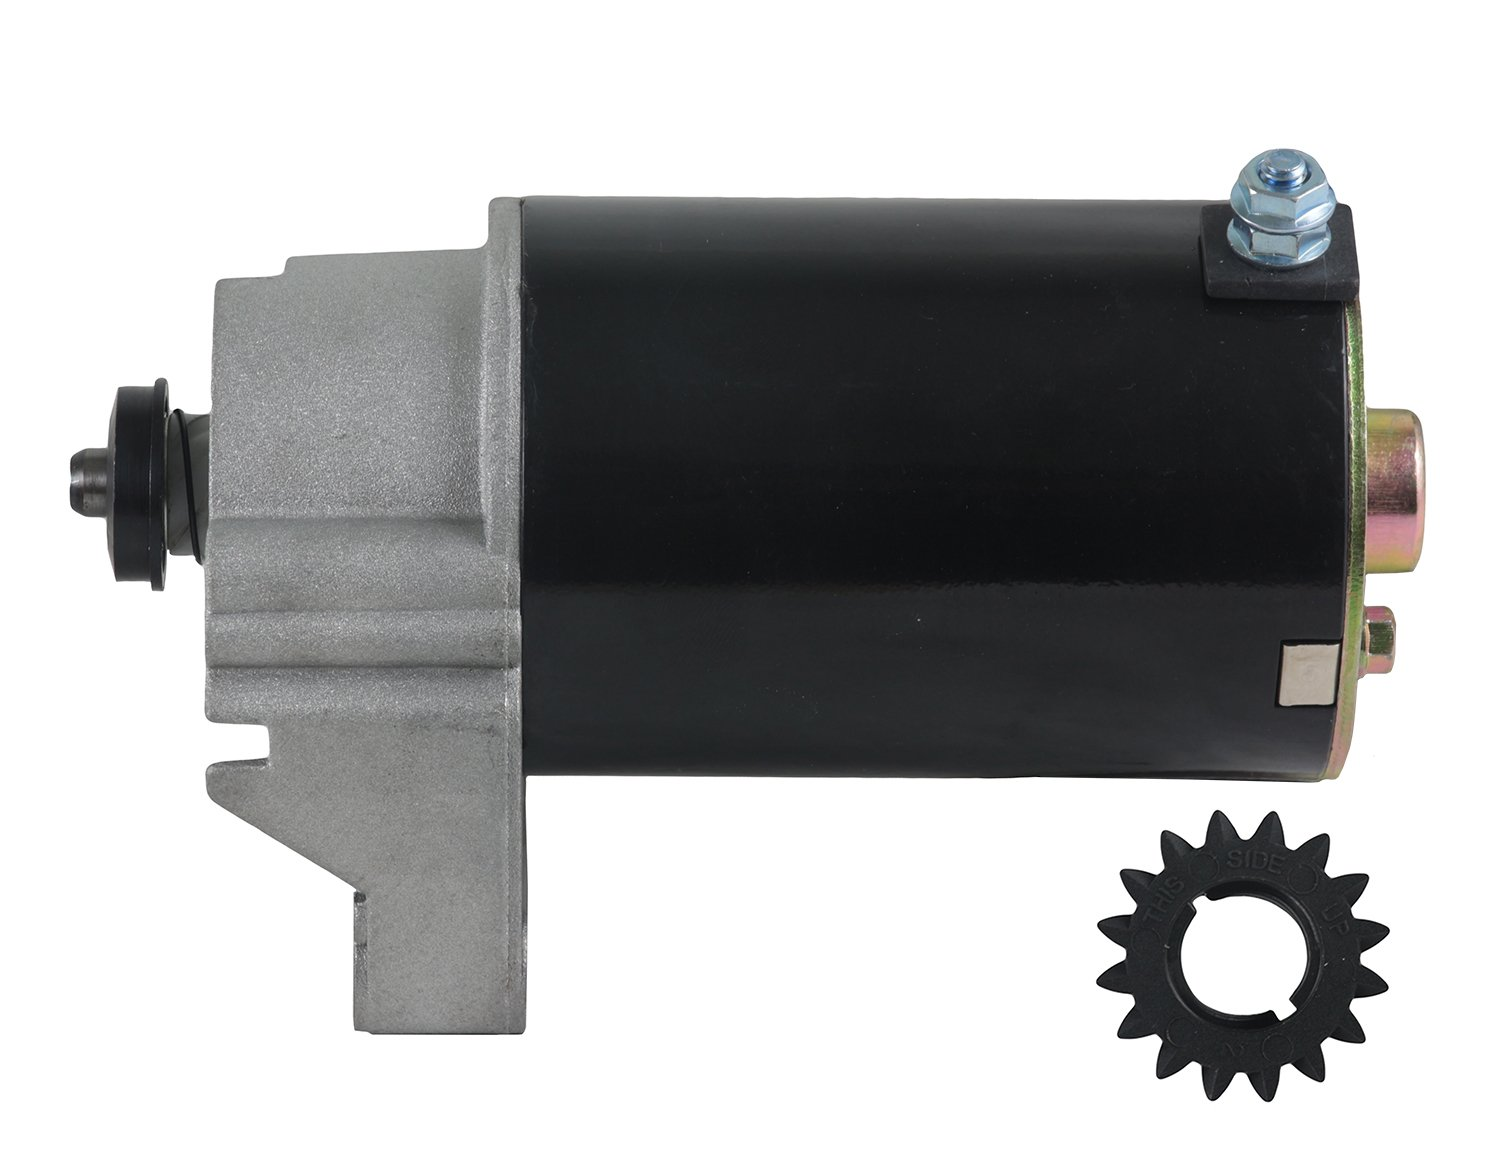 NEW 16 TOOTH STARTER FITS BRIGGS AND STRATTON ENGINE 422437-1150-01 422437-1150-02 by Rareelectrical